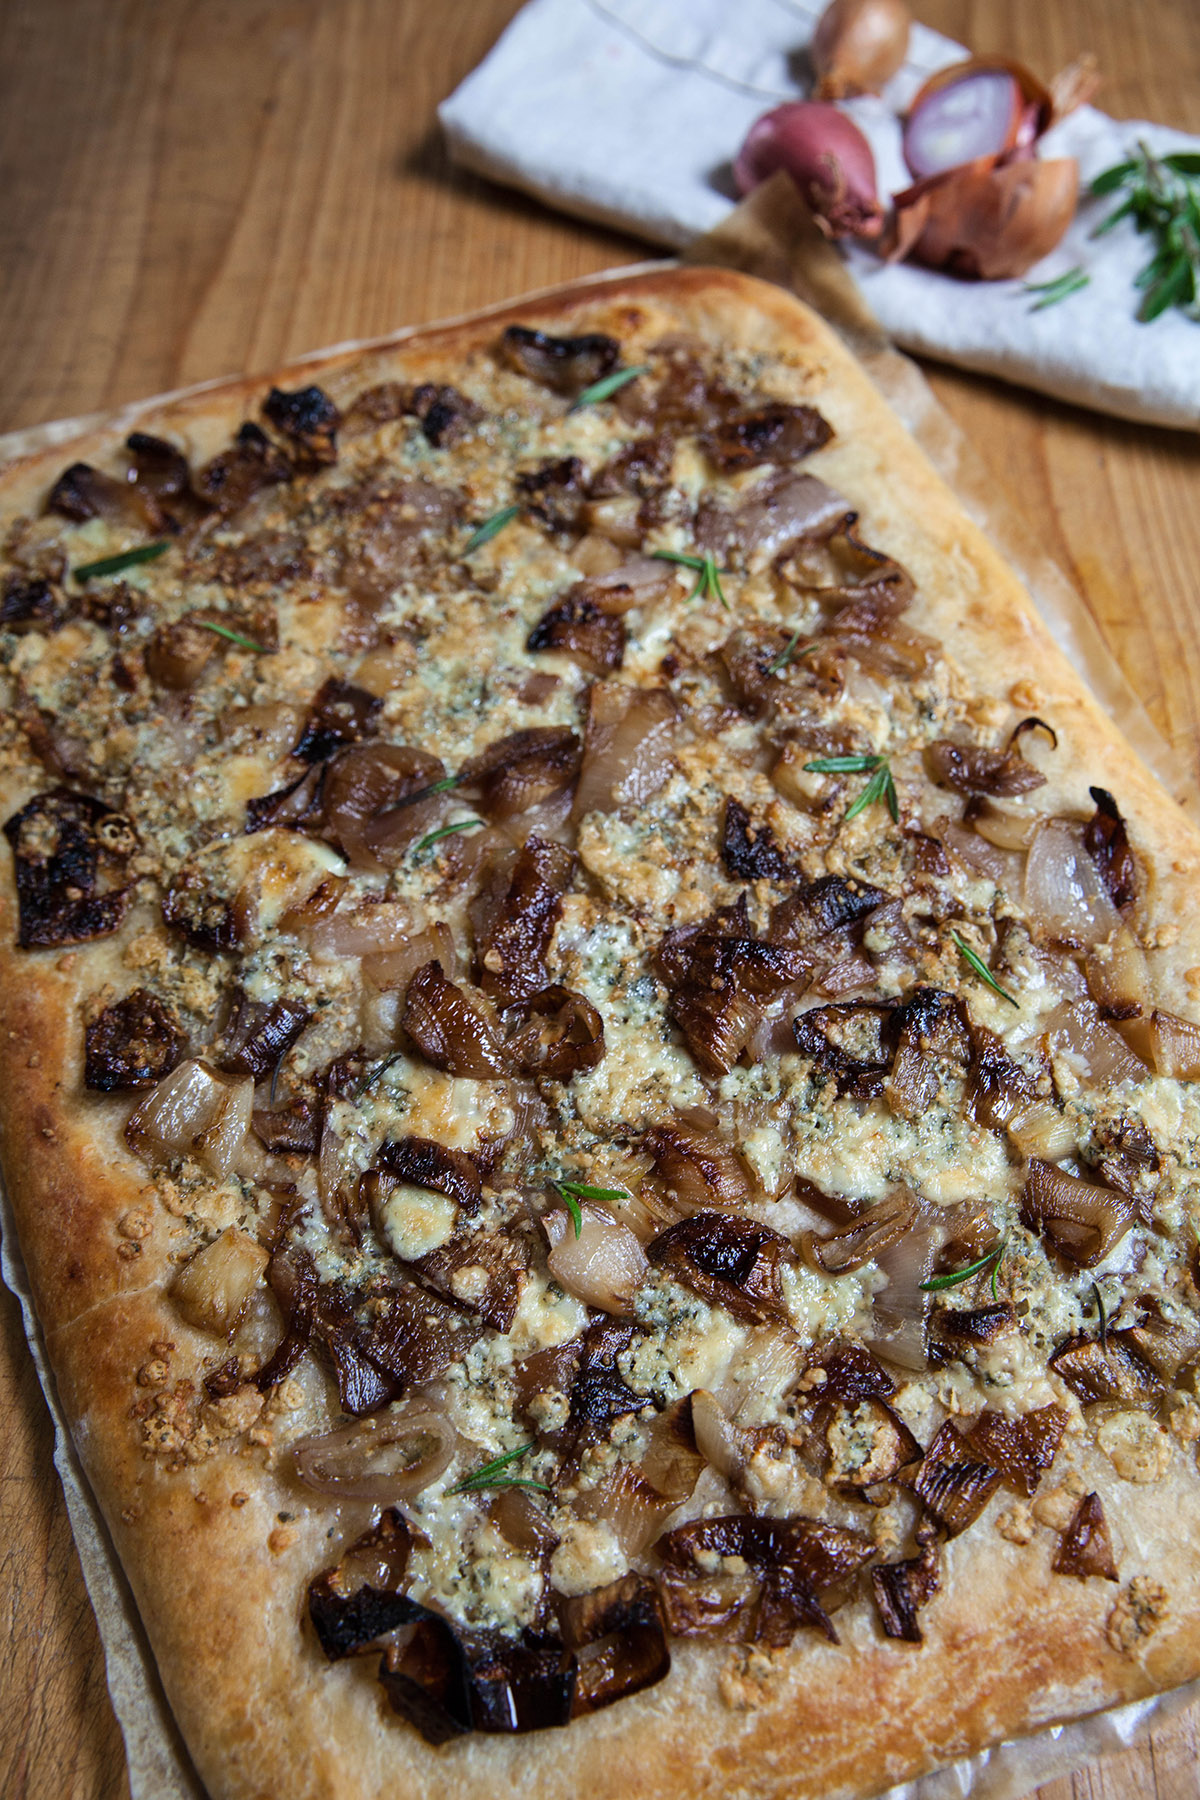 Caramelized Shallot and Gorgonzola Pizza